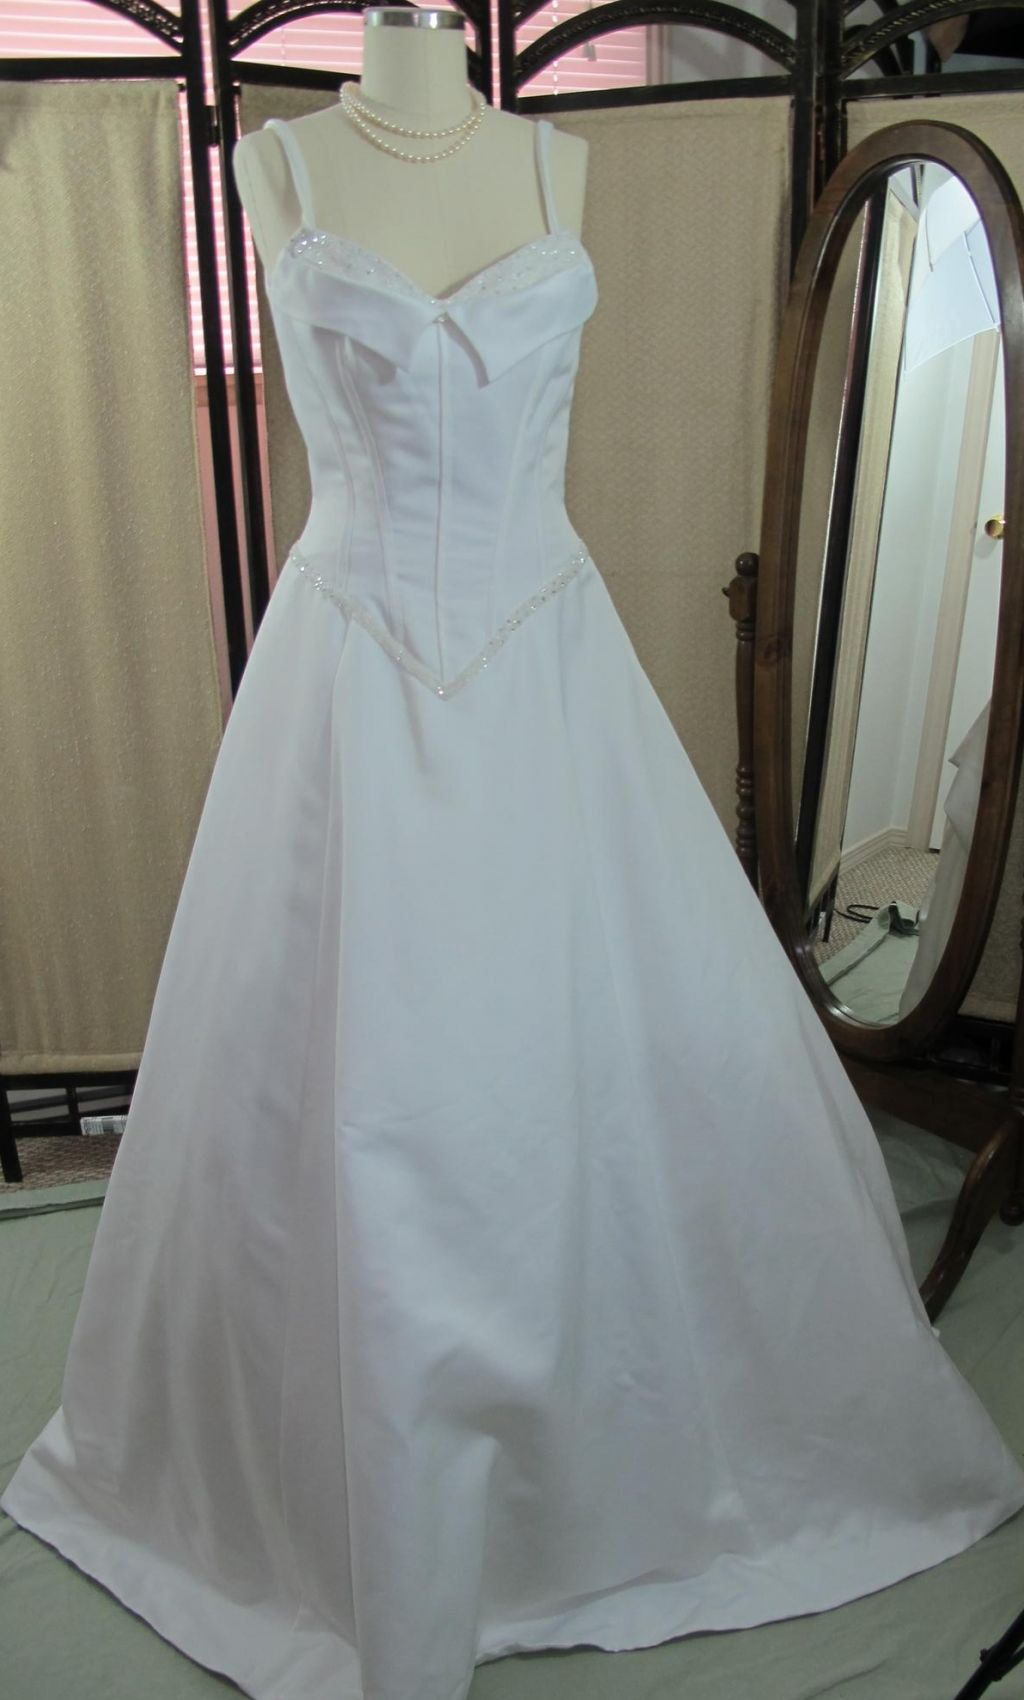 Magnificent Wedding Gown Consignment Image Collection - All Wedding ...